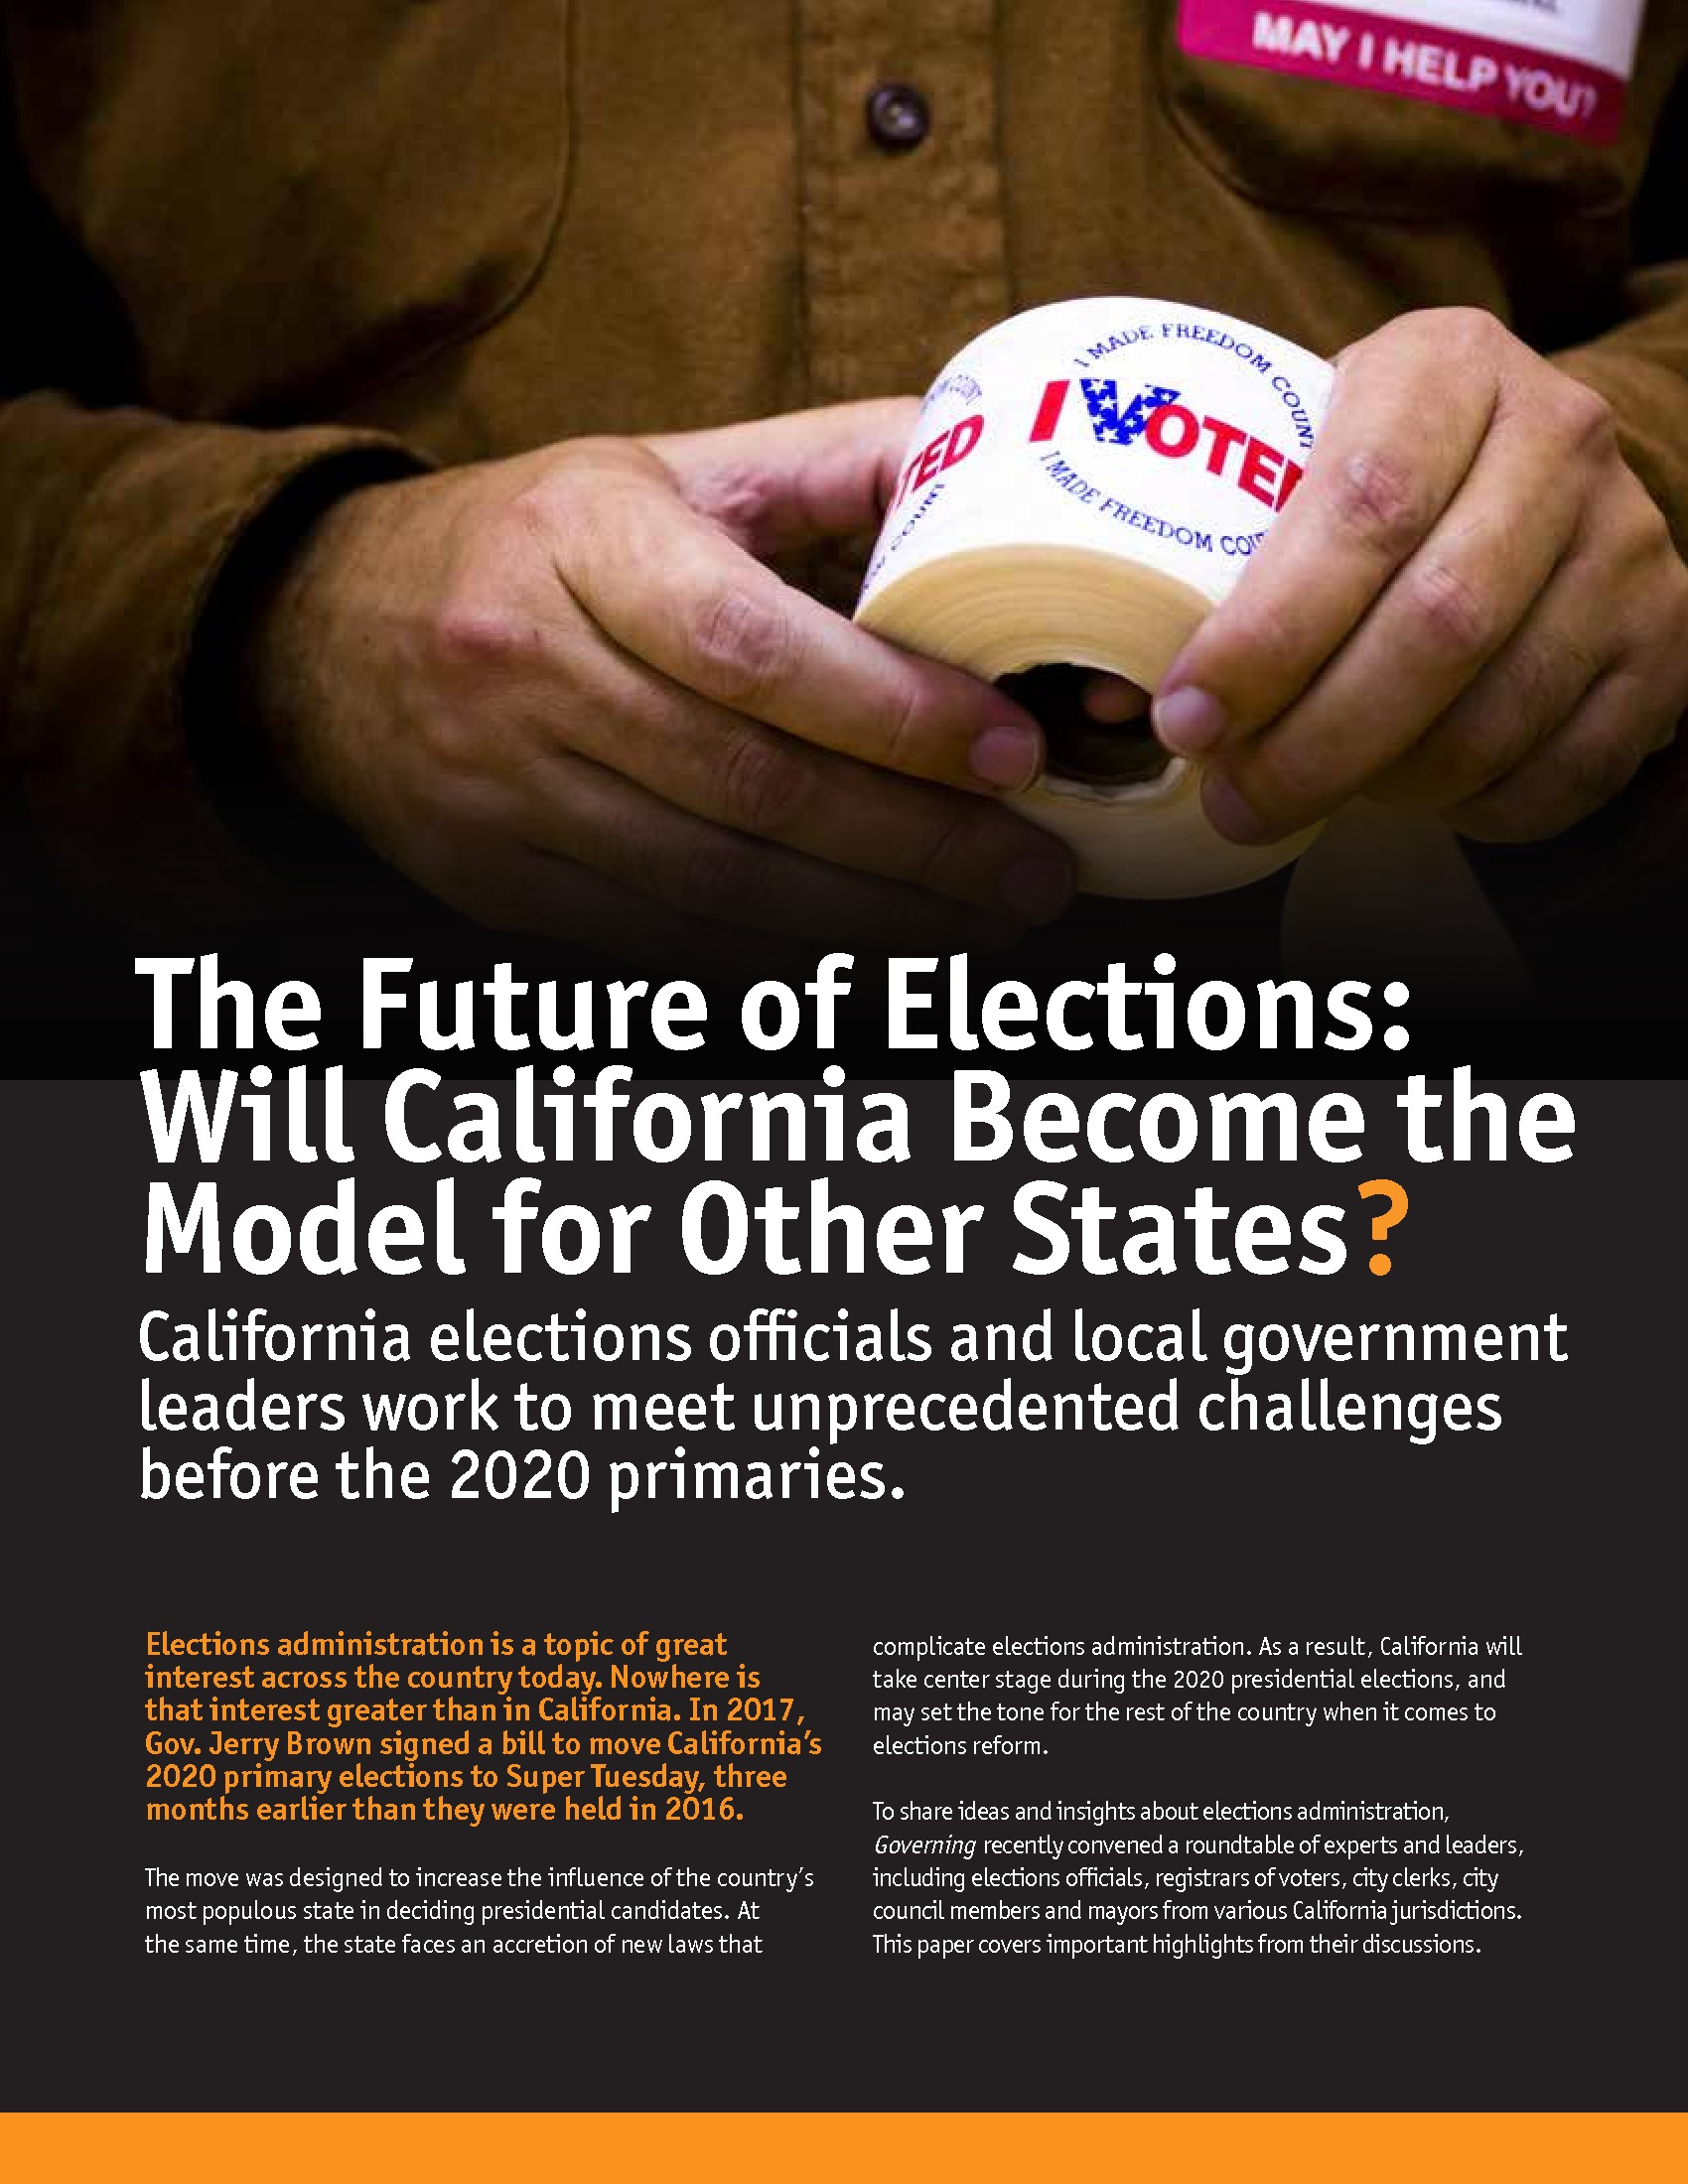 The Future of Elections: Will California Become the Model for Other States?